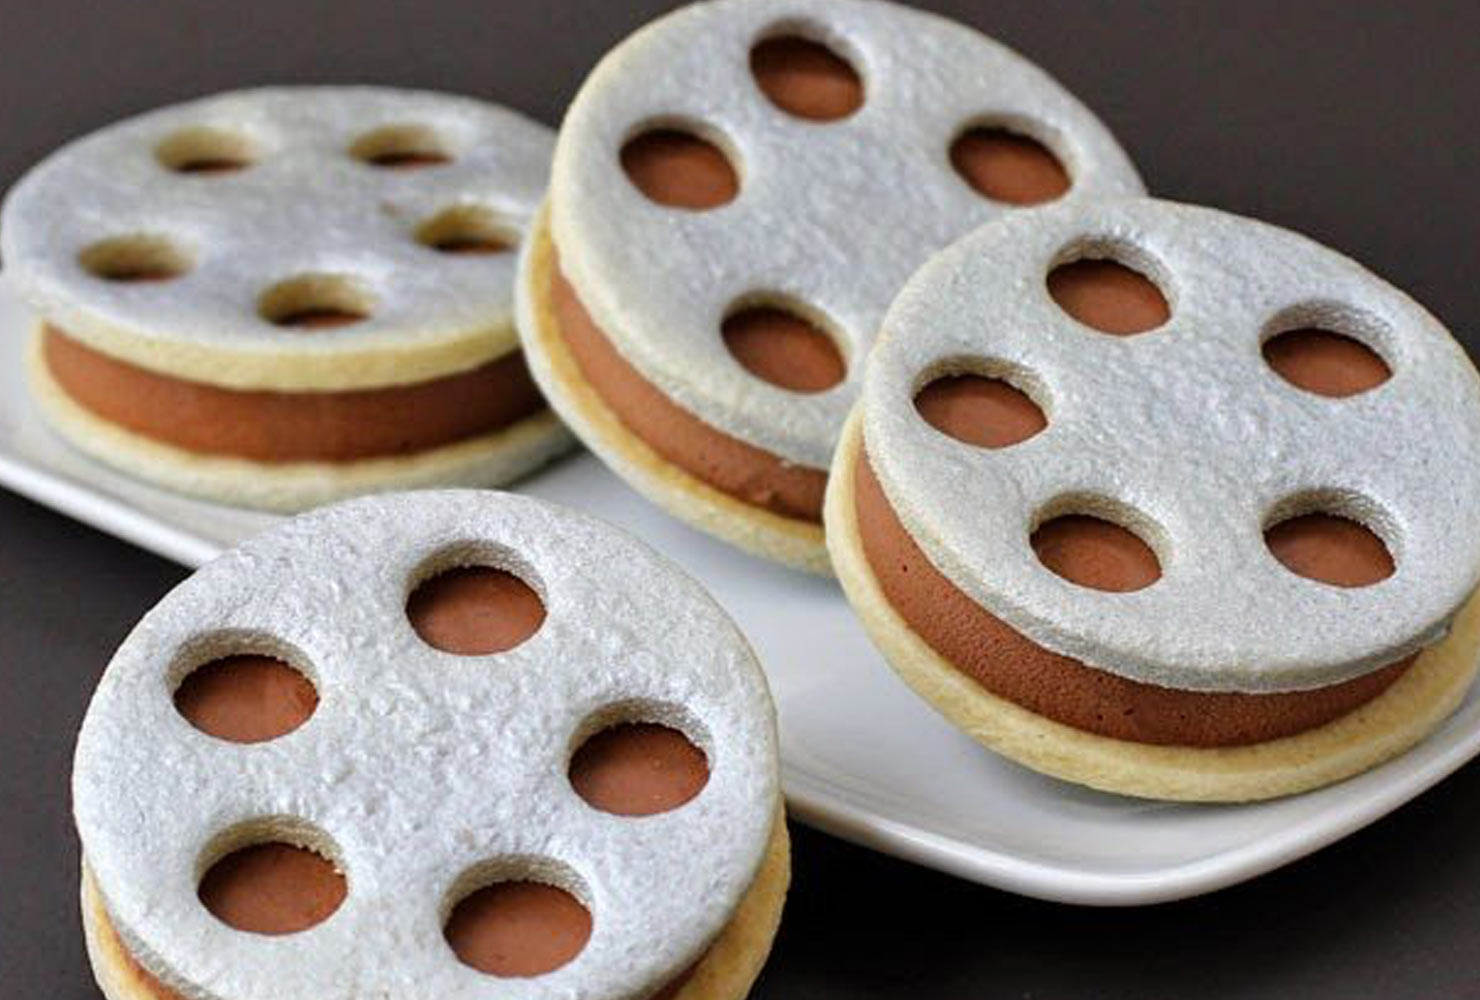 ice cream sandwiches that look like film reels